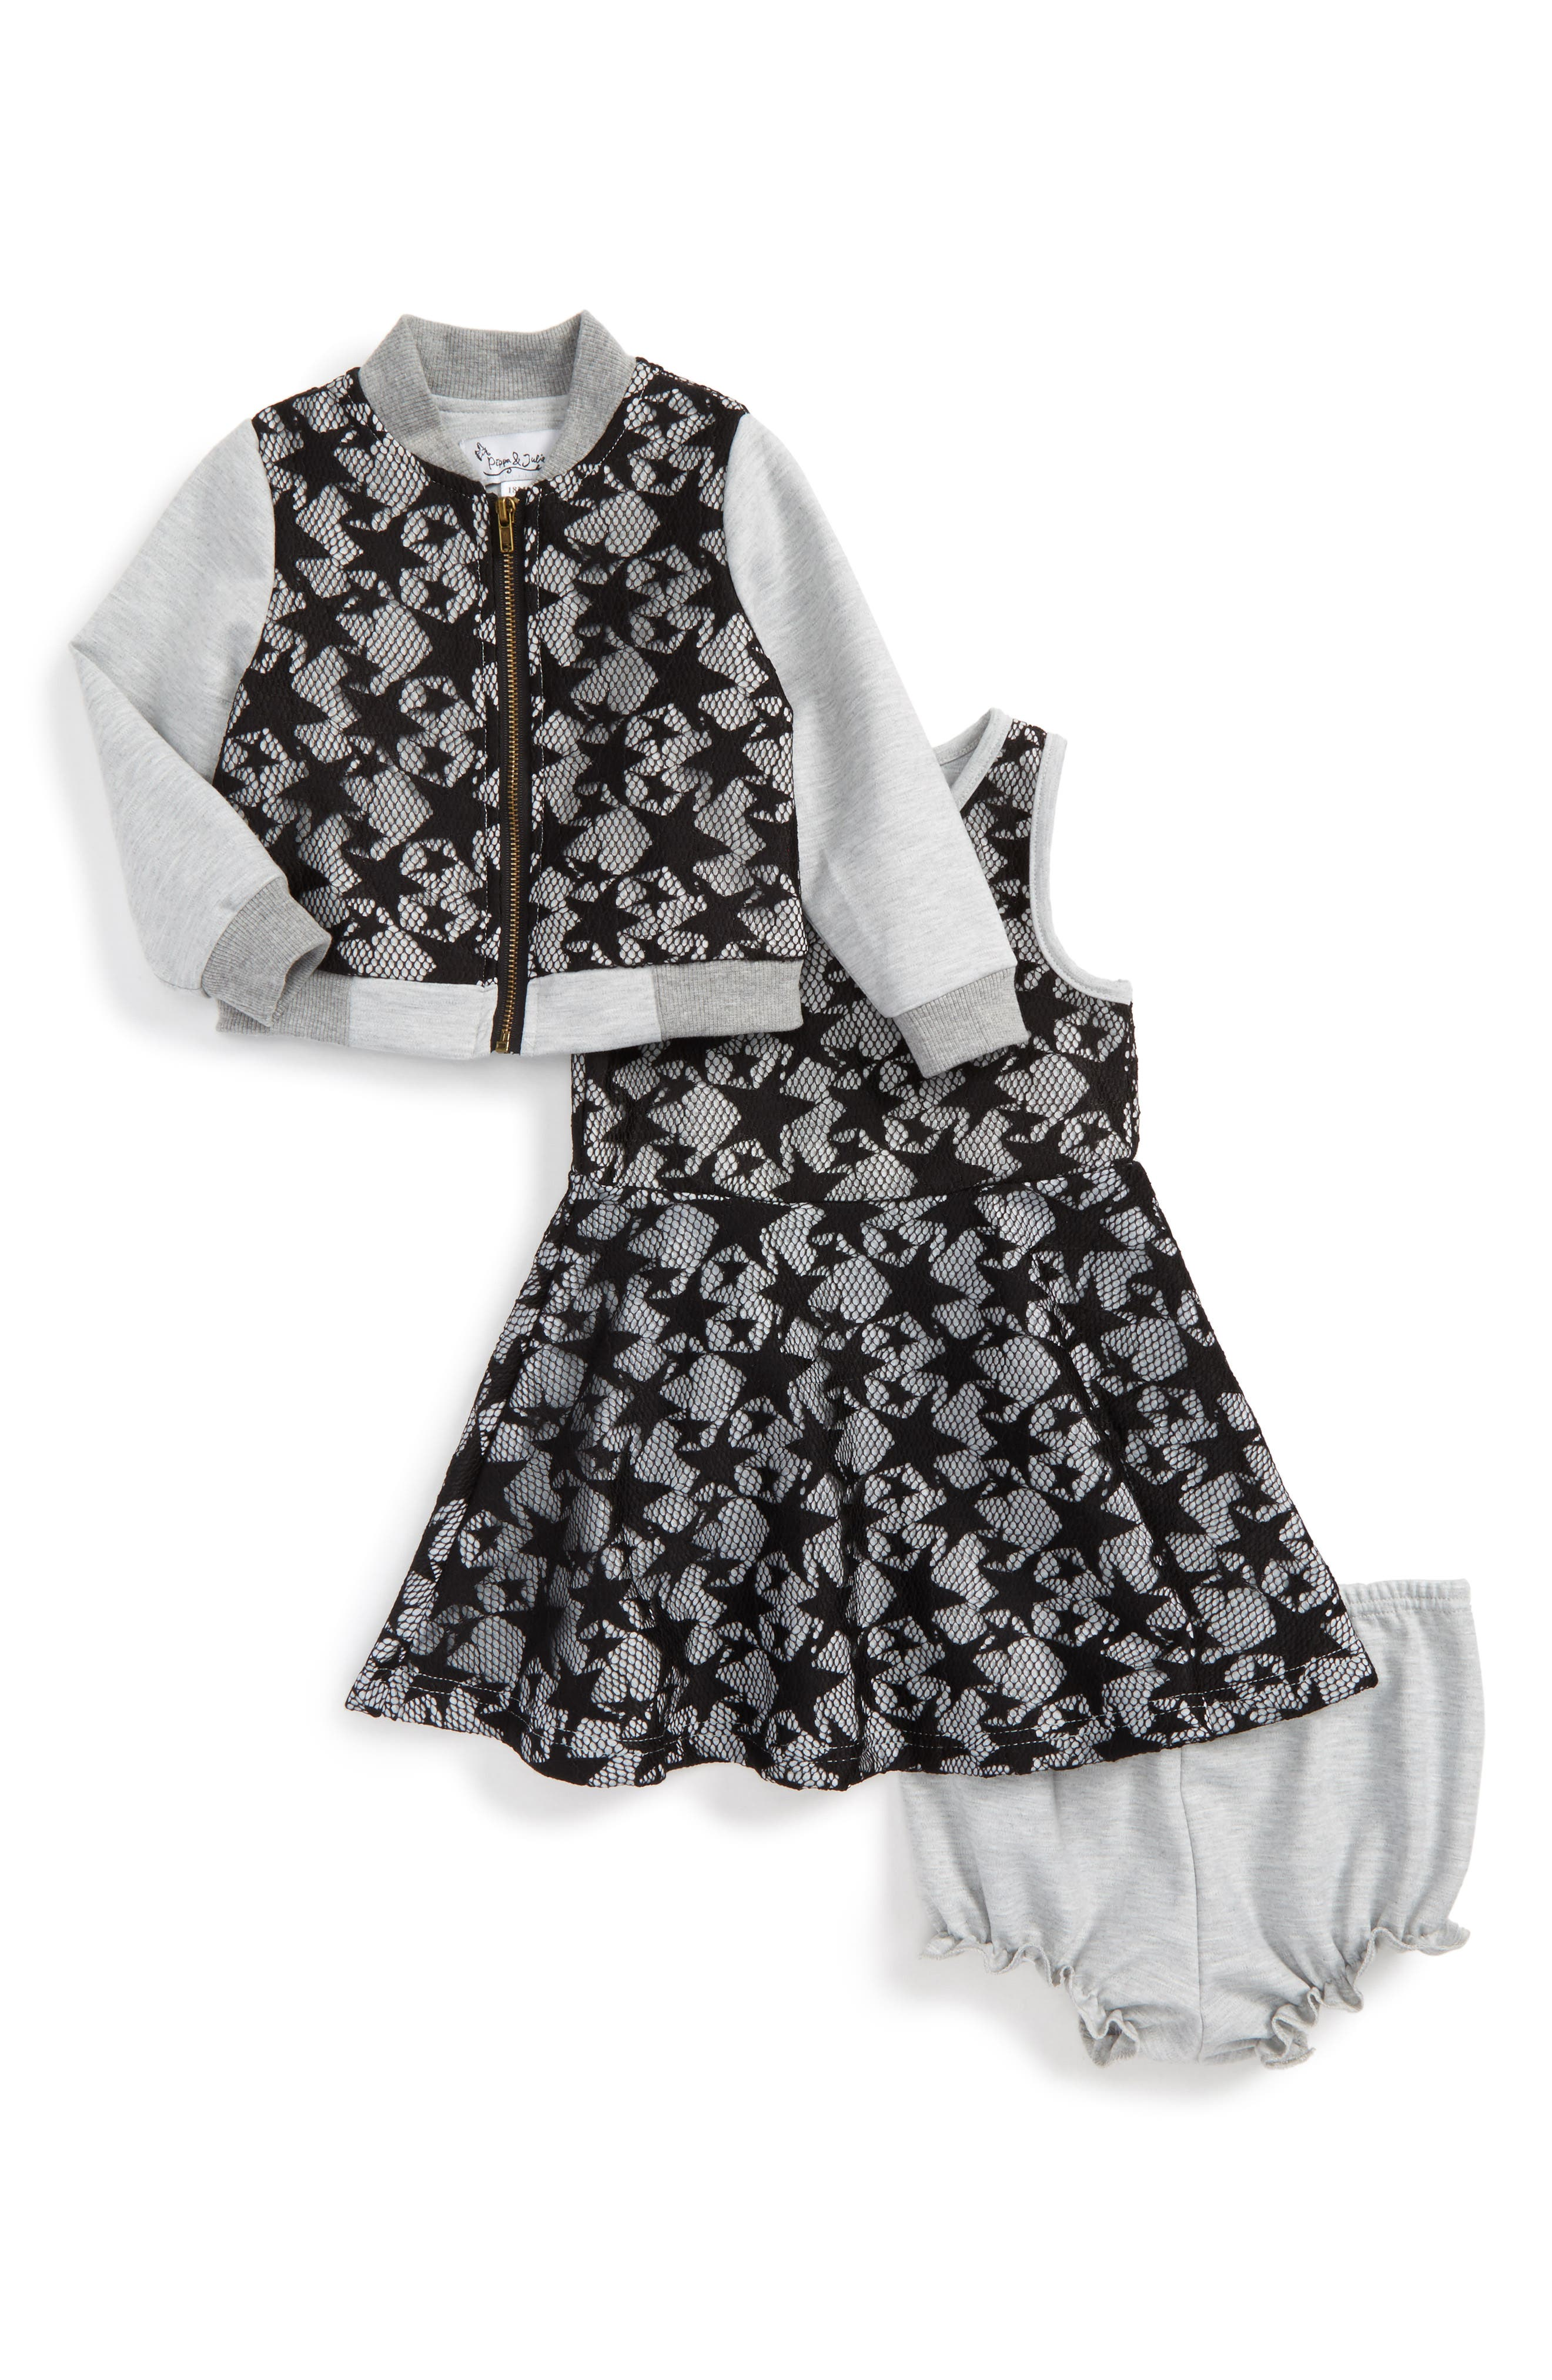 Star Lace Jacket & Dress Set,                             Main thumbnail 1, color,                             007